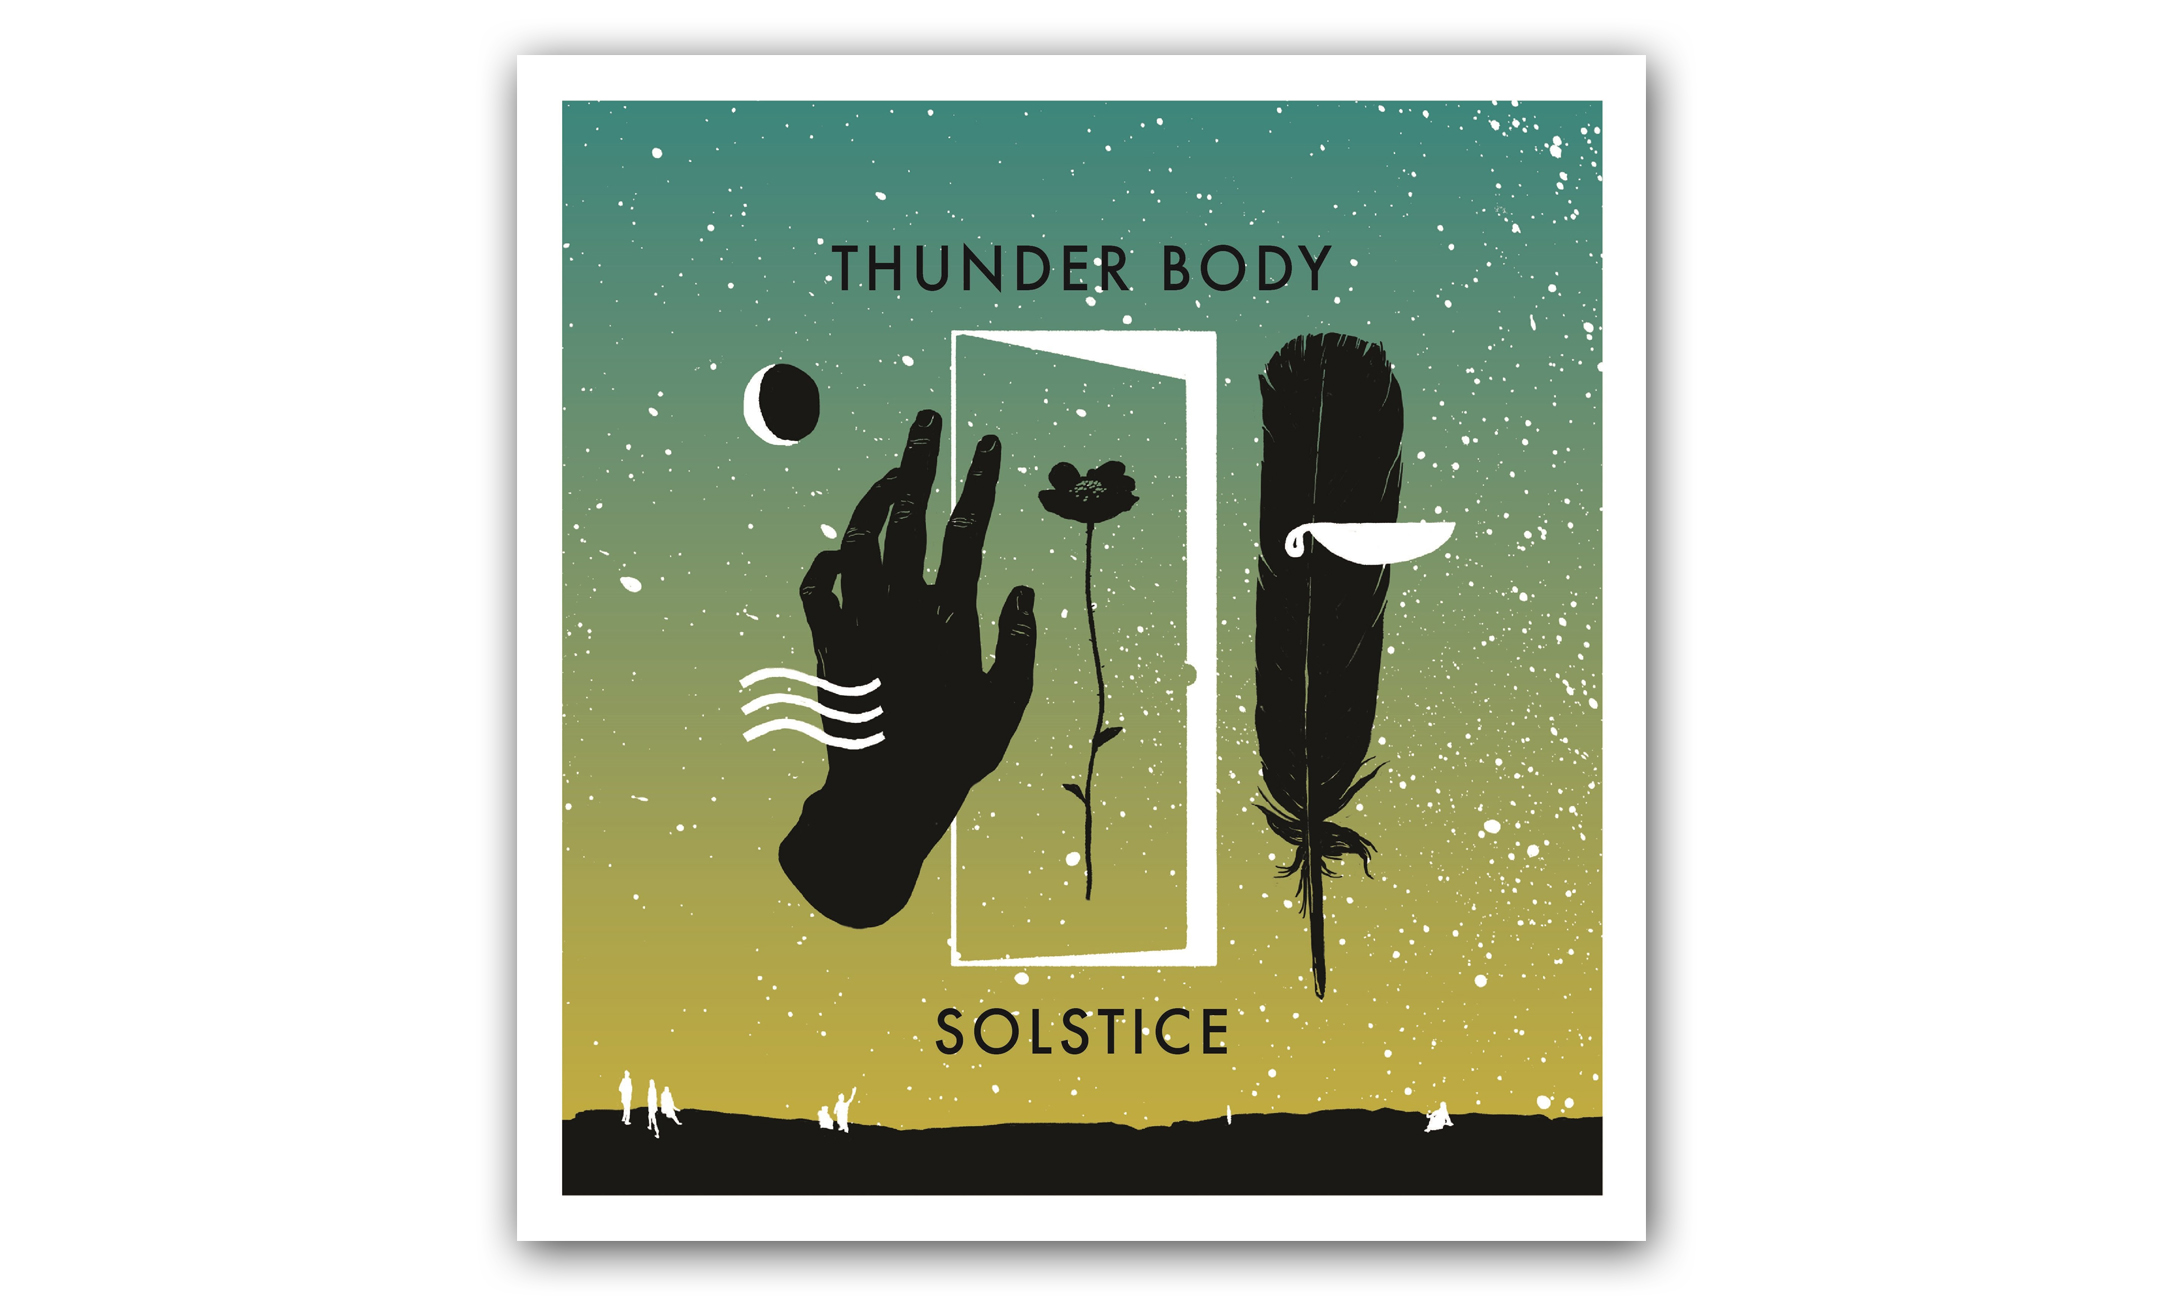 Thunder Body getting ready to release Solstice through Rootfire Cooperative